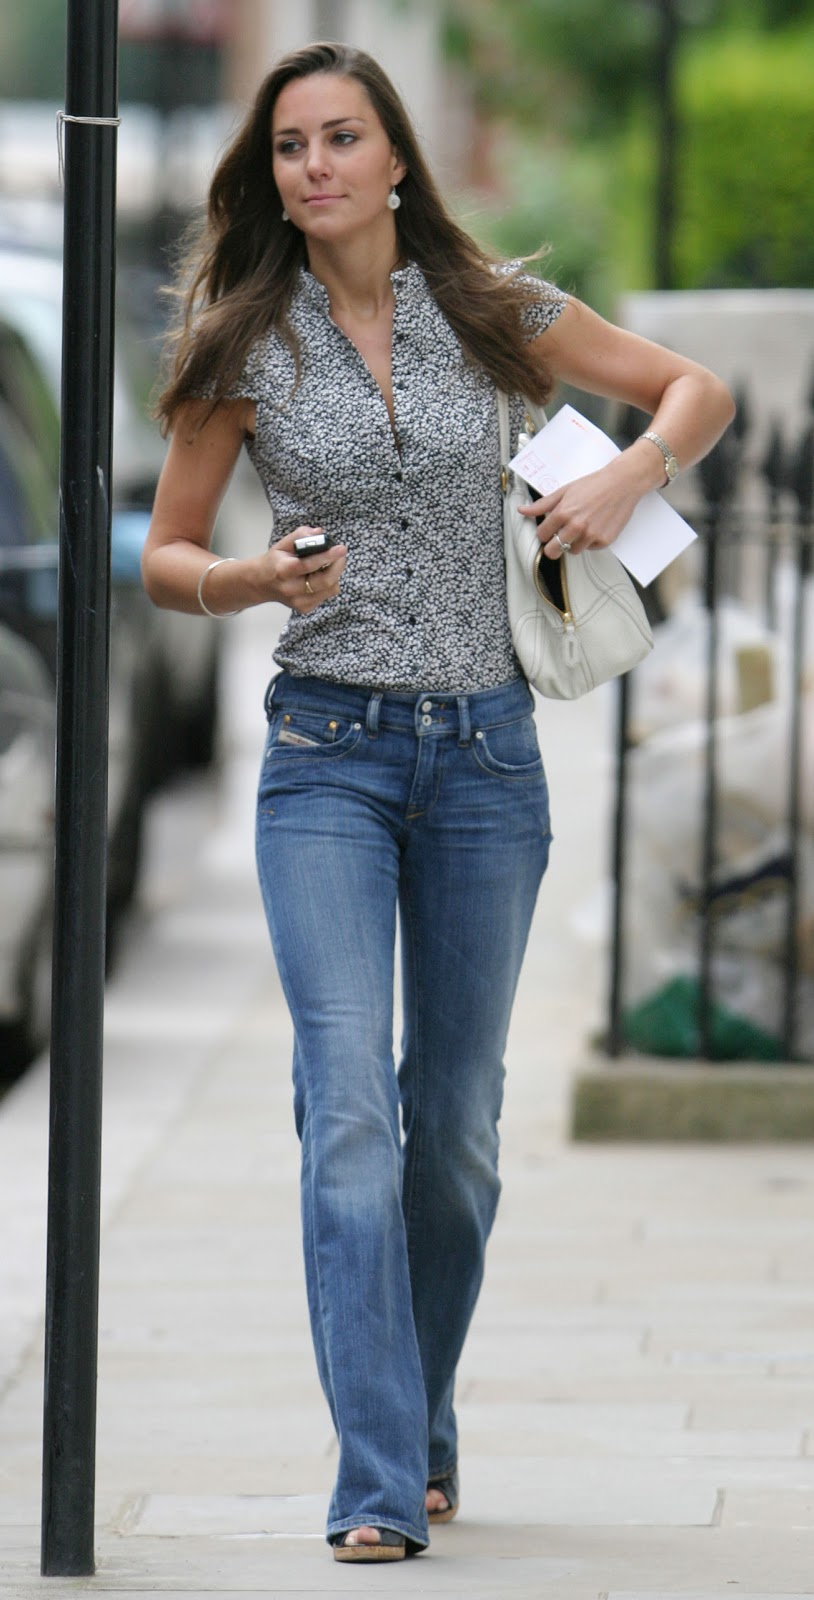 Mannequin Kate Middleton Rocks Diesel Jeans